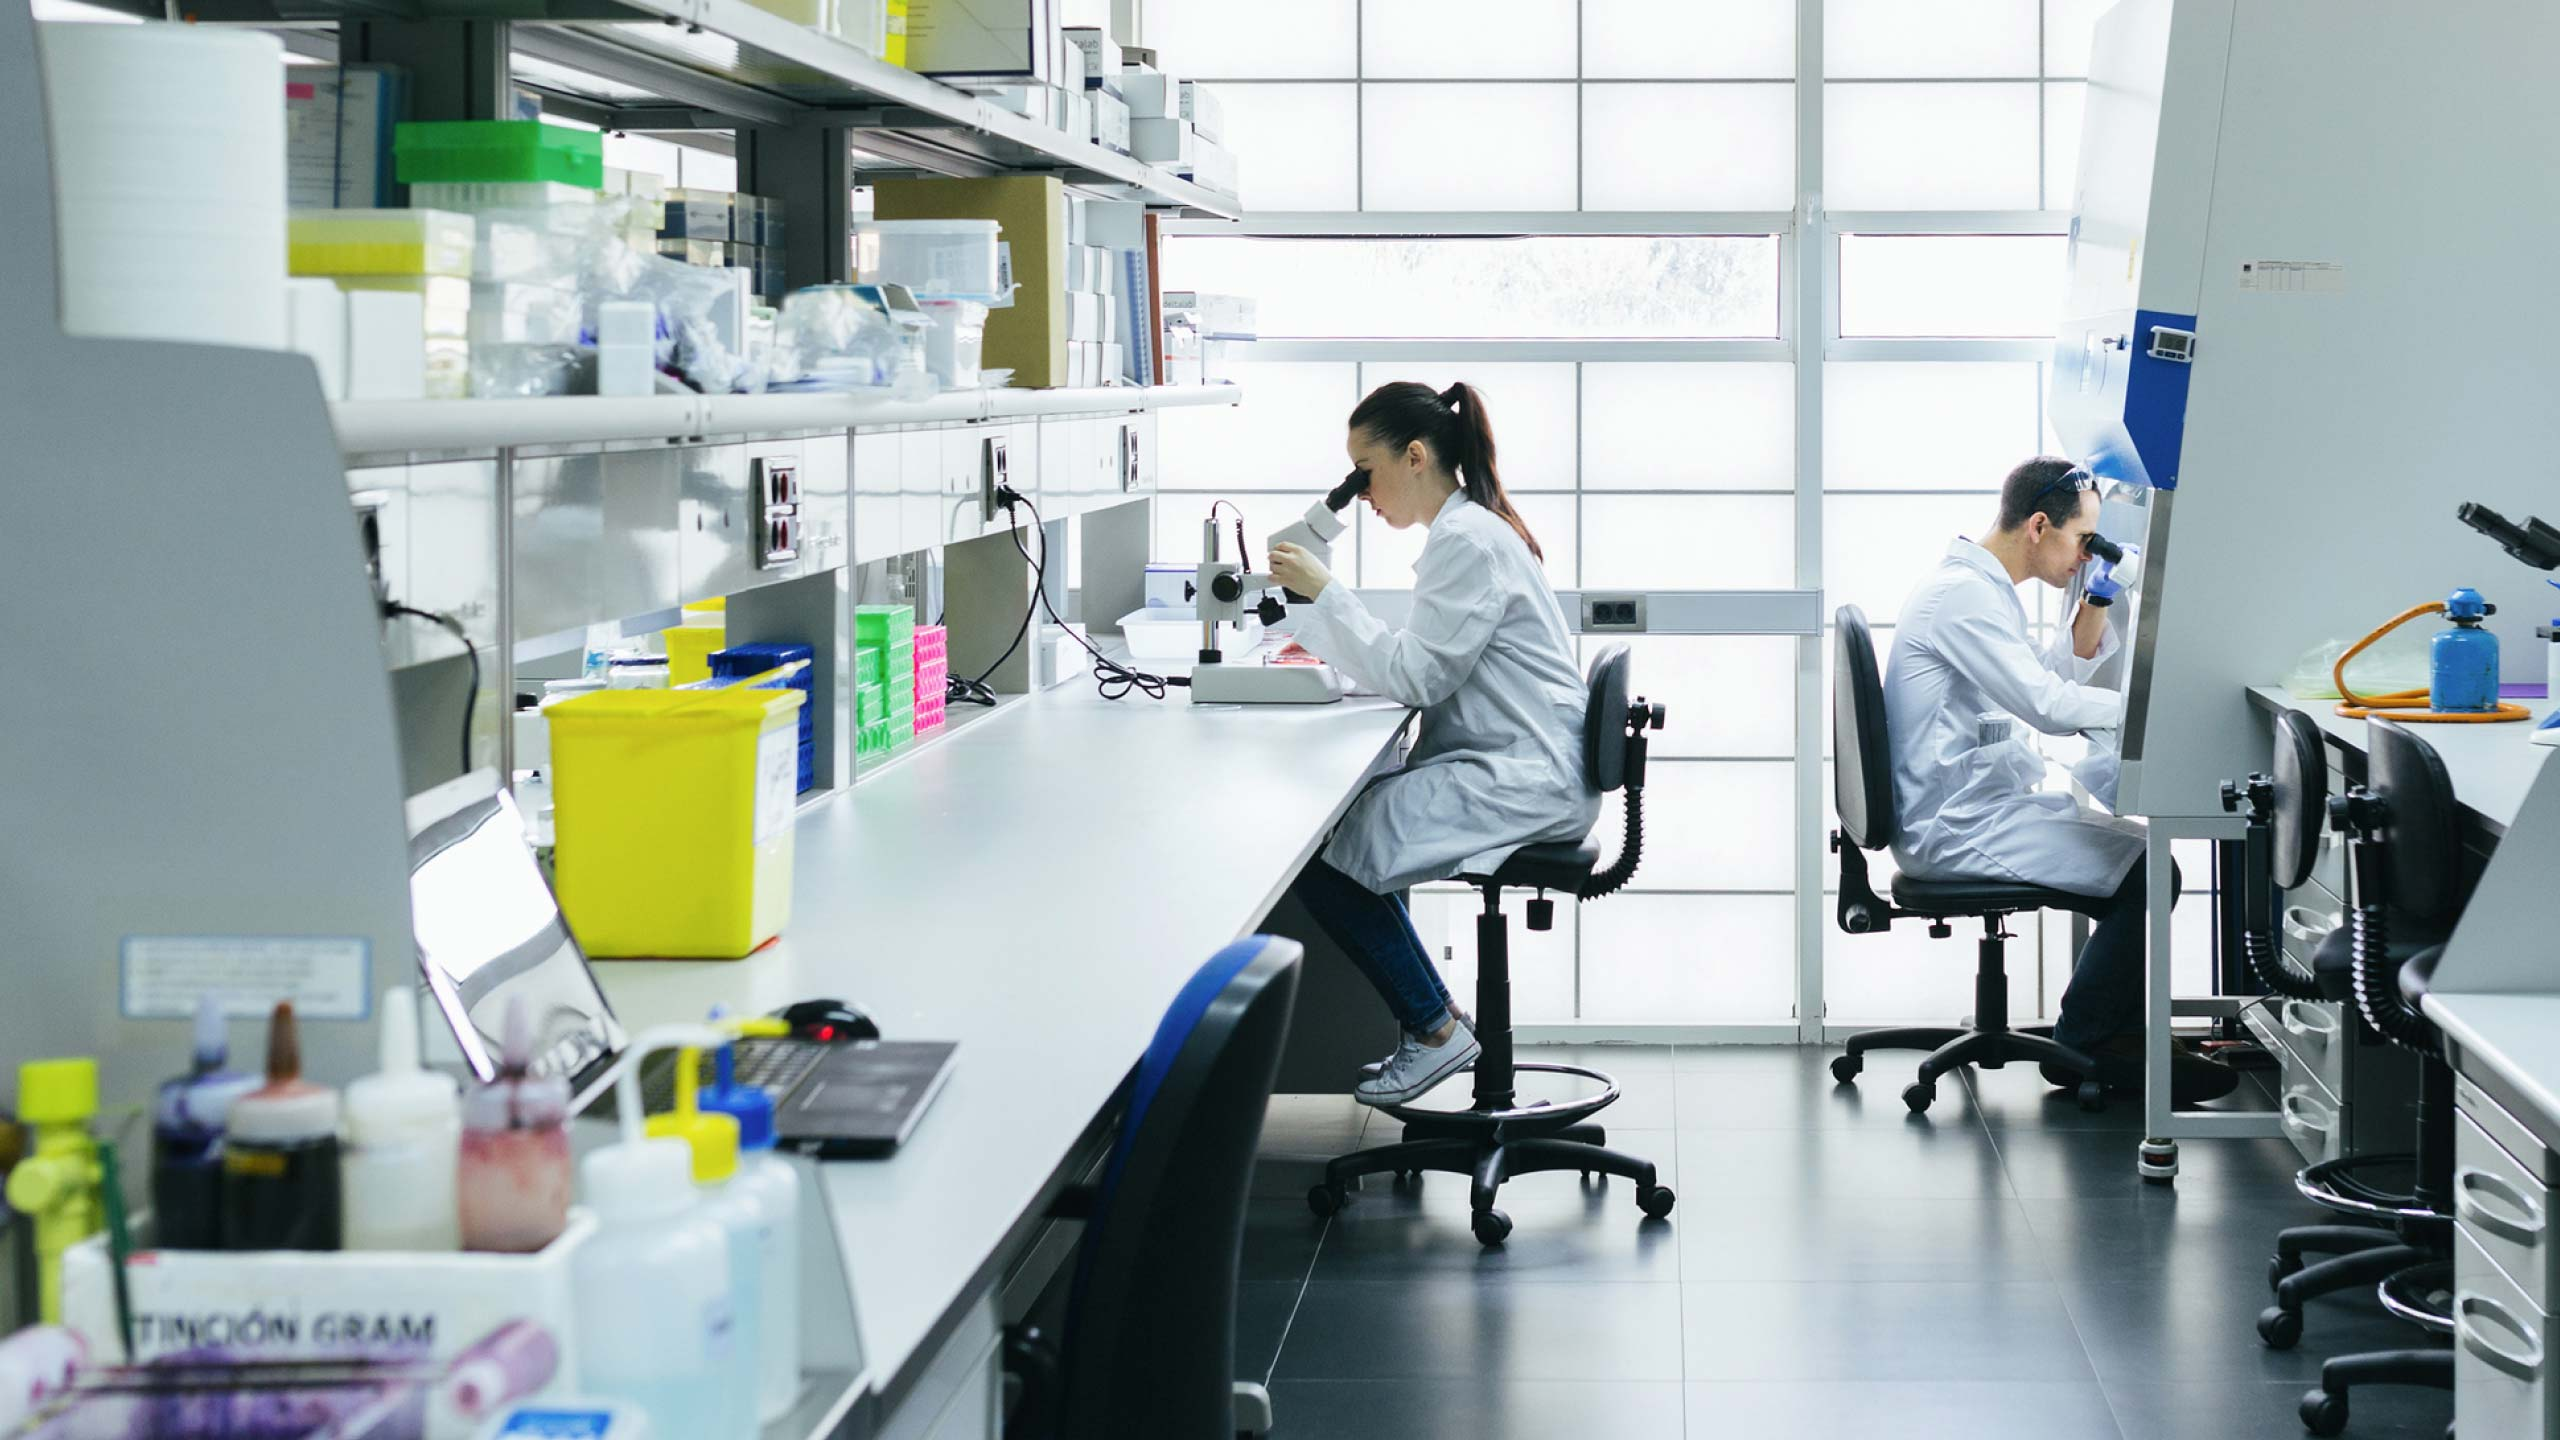 Two medical researchers in a lab looking at microscopes